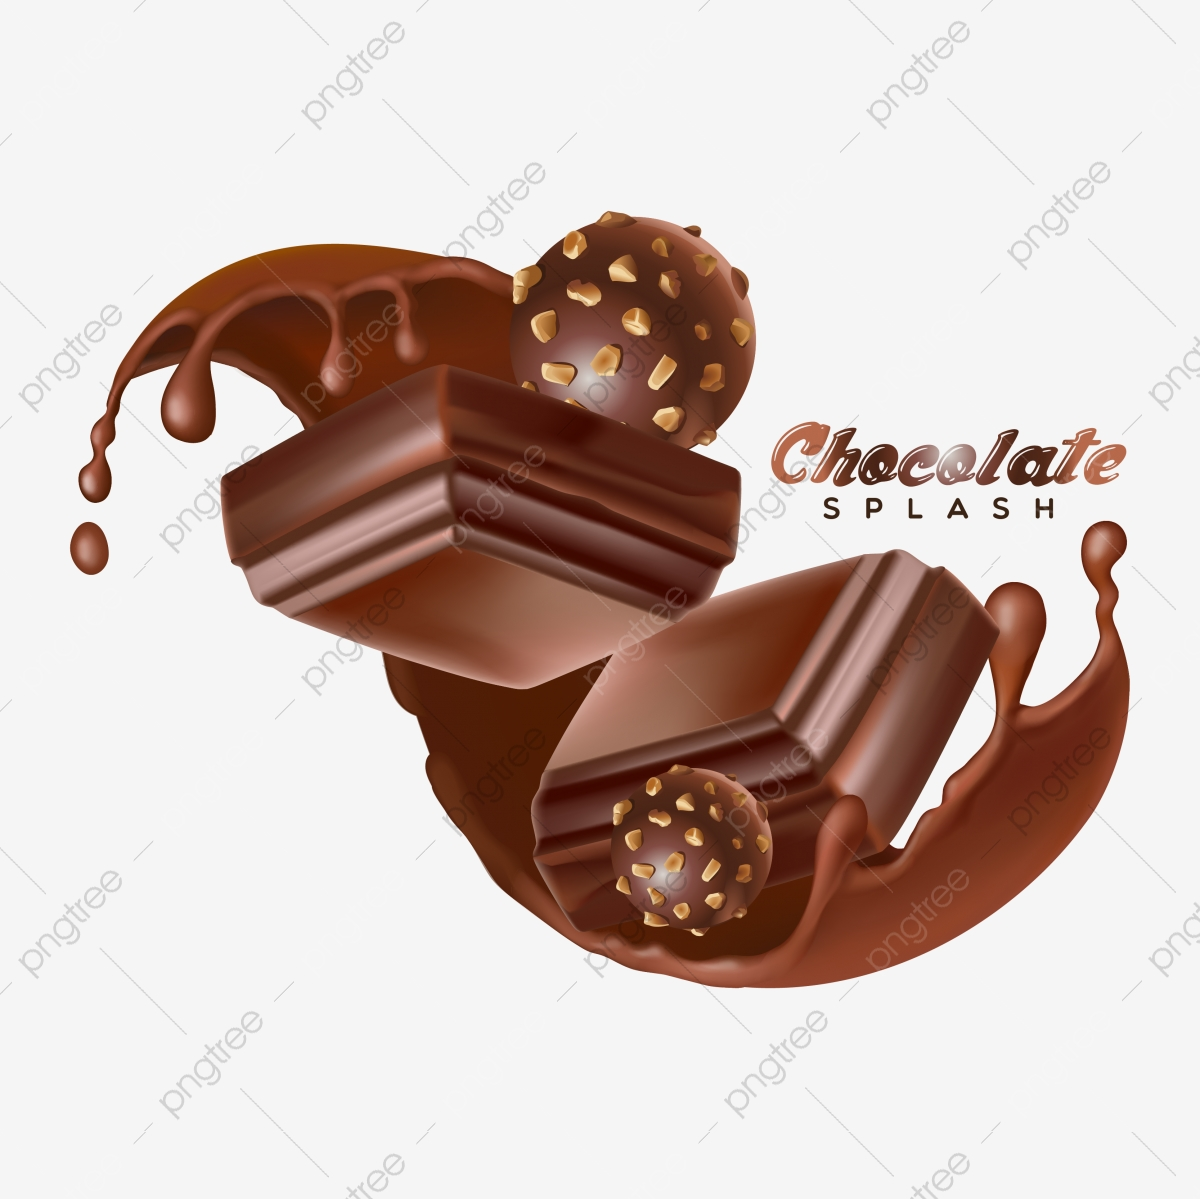 chocolate liquid splash and chocolate ball vector badge illustration sugar object glossy png and vector with transparent background for free download https pngtree com freepng chocolate liquid splash and chocolate ball vector badge illustration 4925241 html